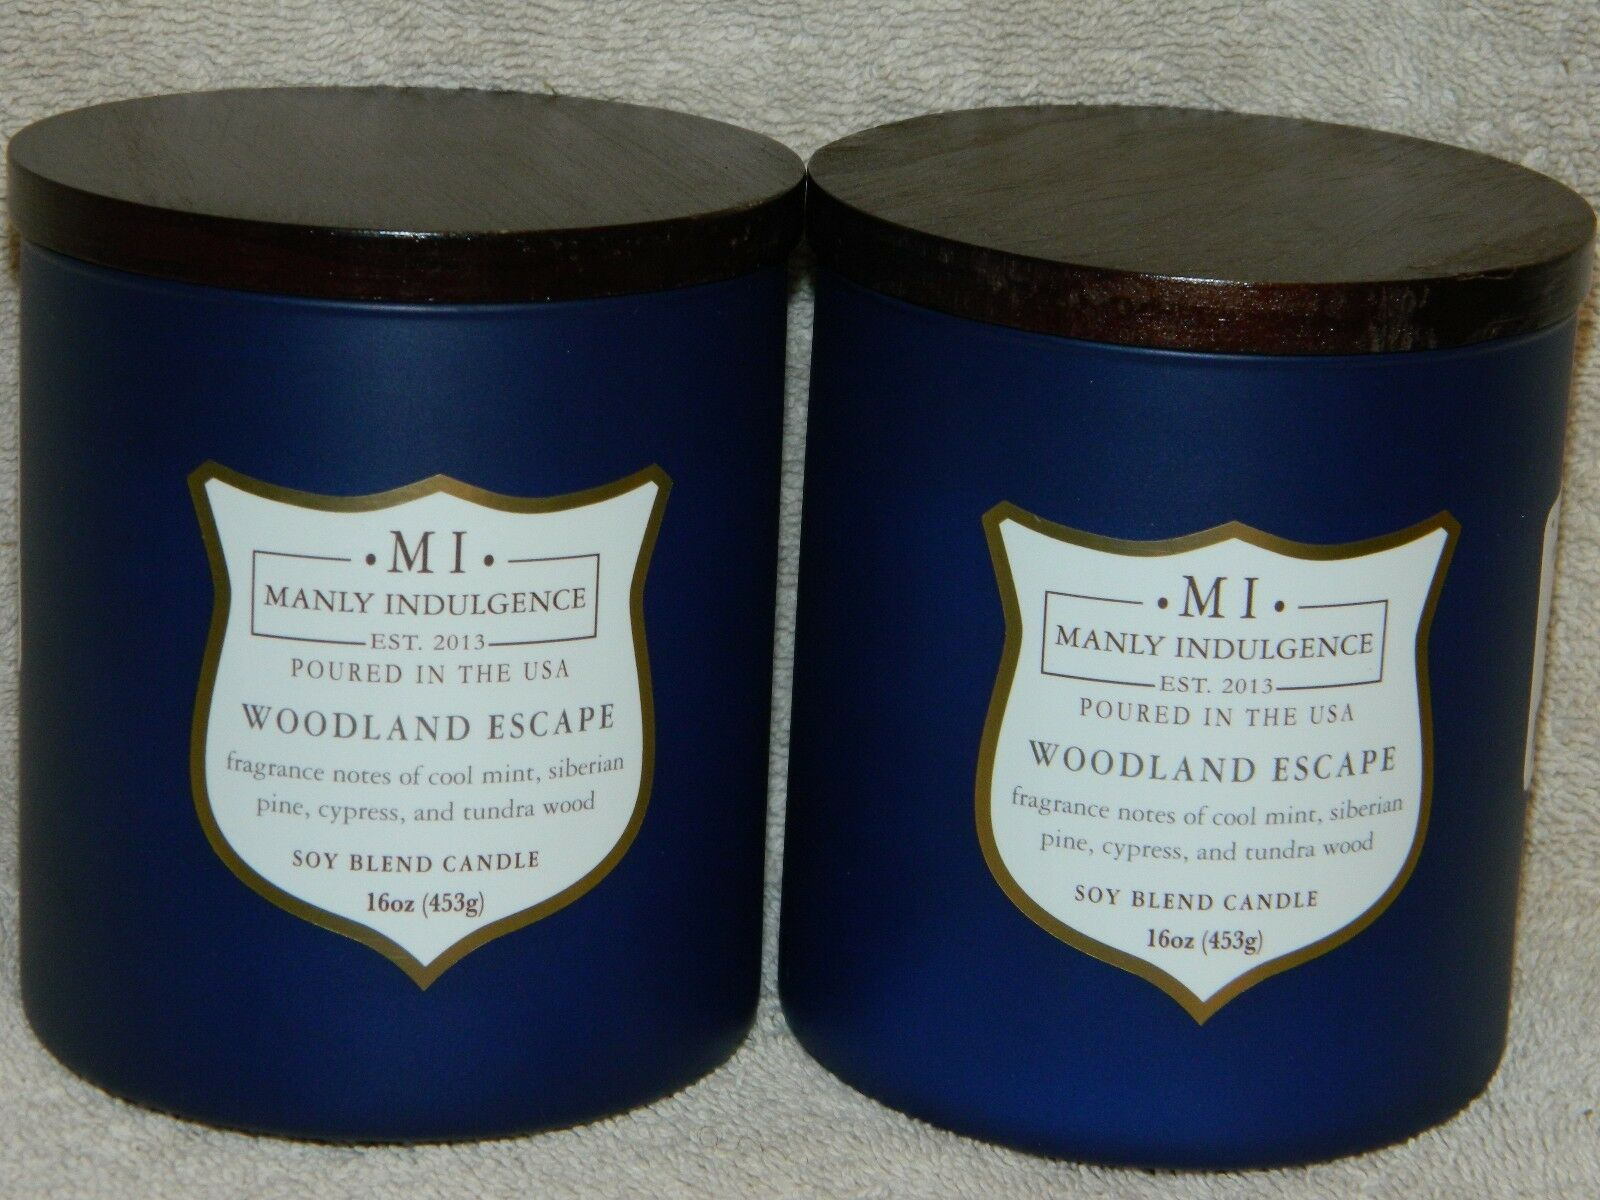 MANLY INDULGENCE - Woodland Escape -15 oz each Soy Blend Candles  NEW x 2